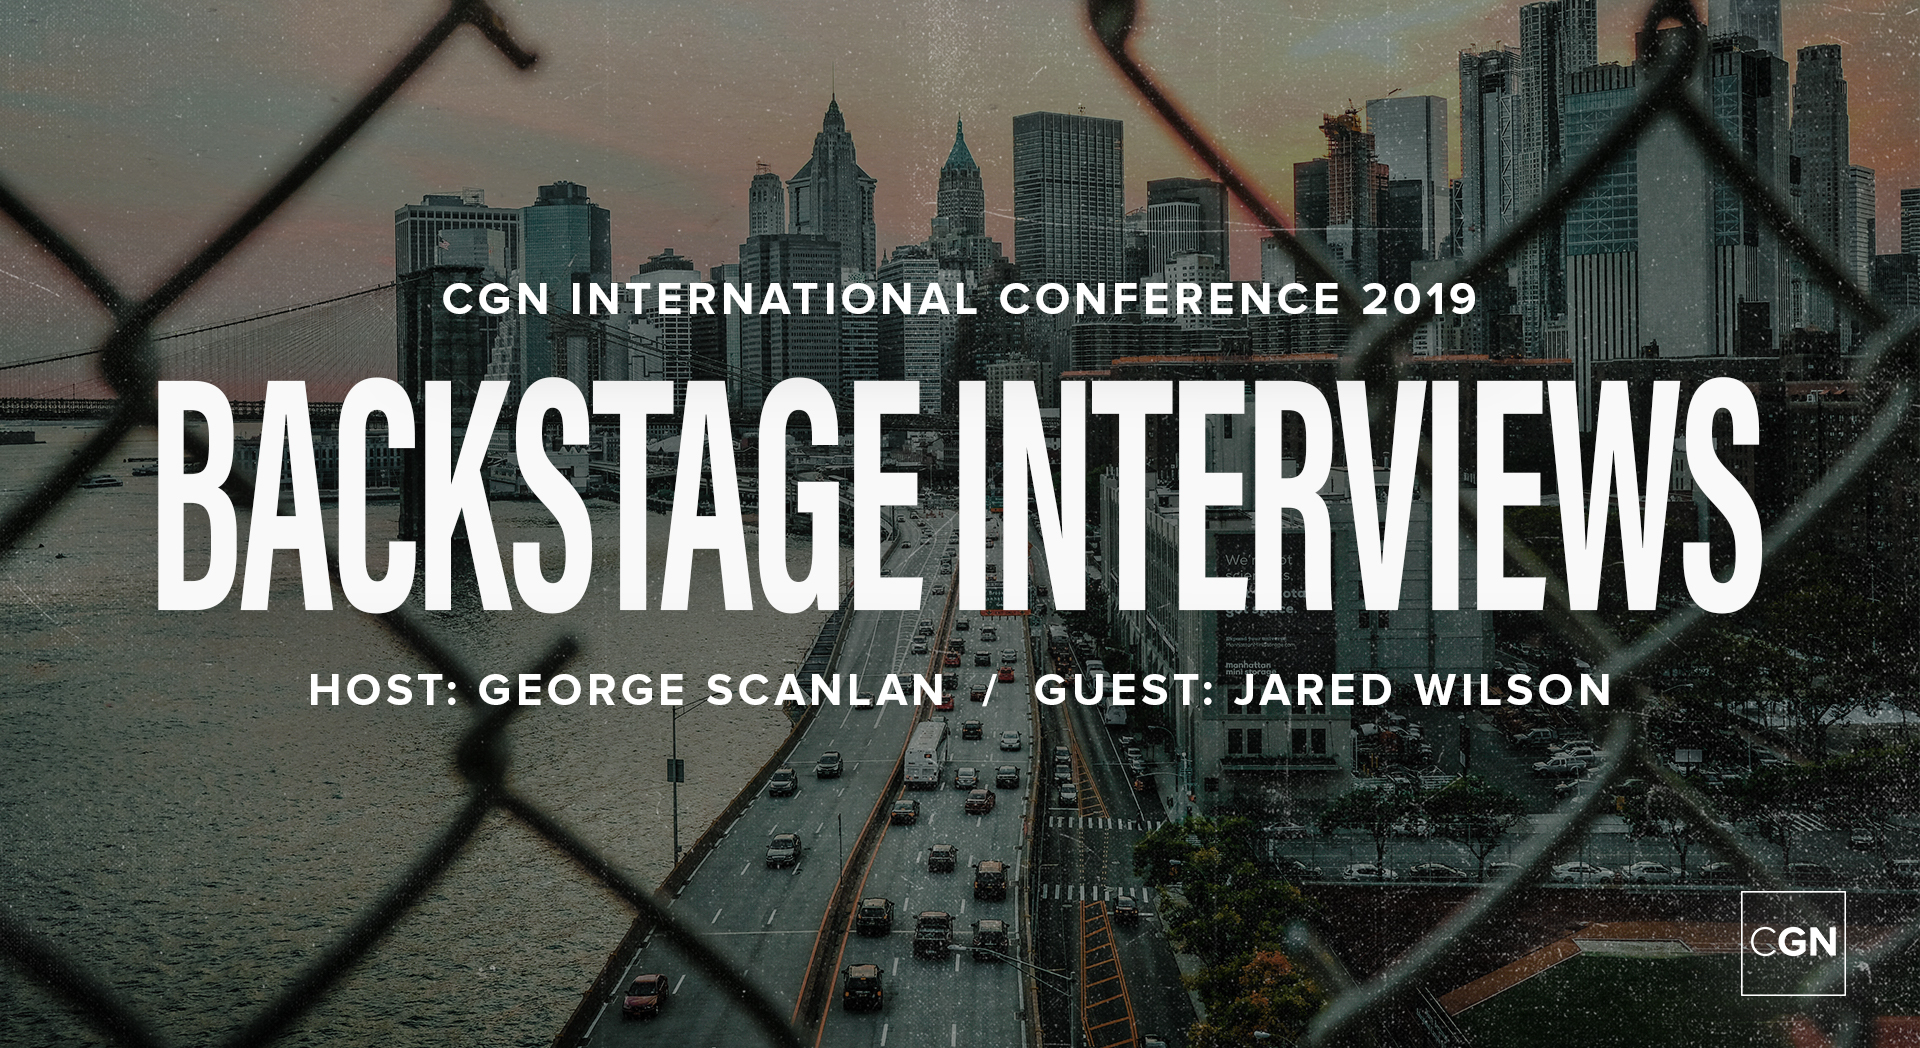 Backstage Interview - Jared Wilson